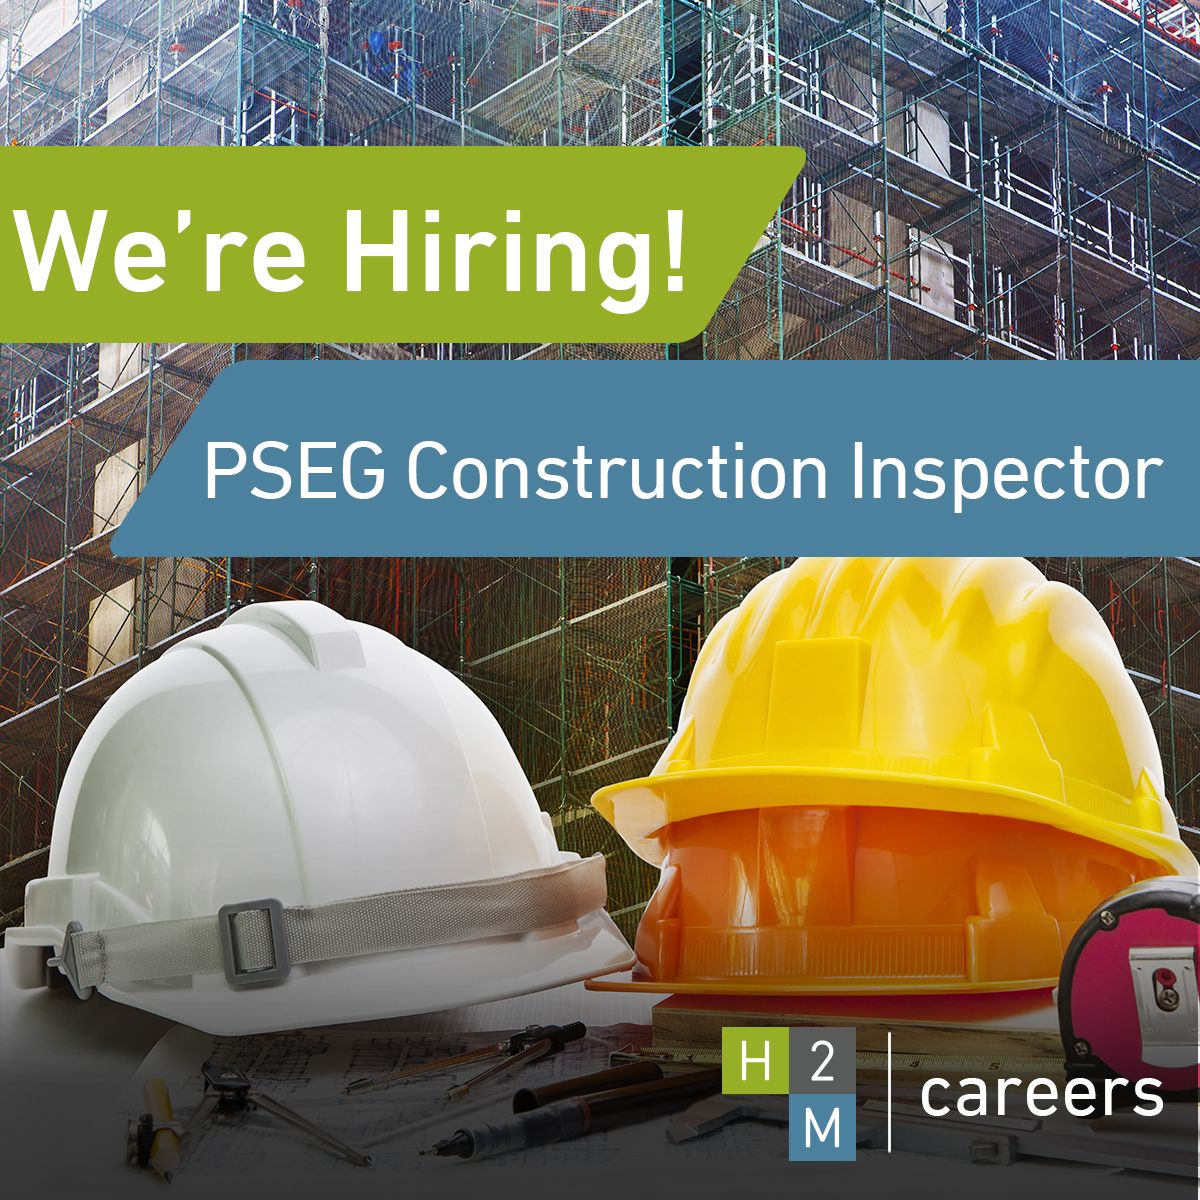 We Re Hiring A Pseg Construction Inspector With 5 Years Of Experience In Melville Ny Job Description Th Job Opening Career Opportunities Construction Jobs